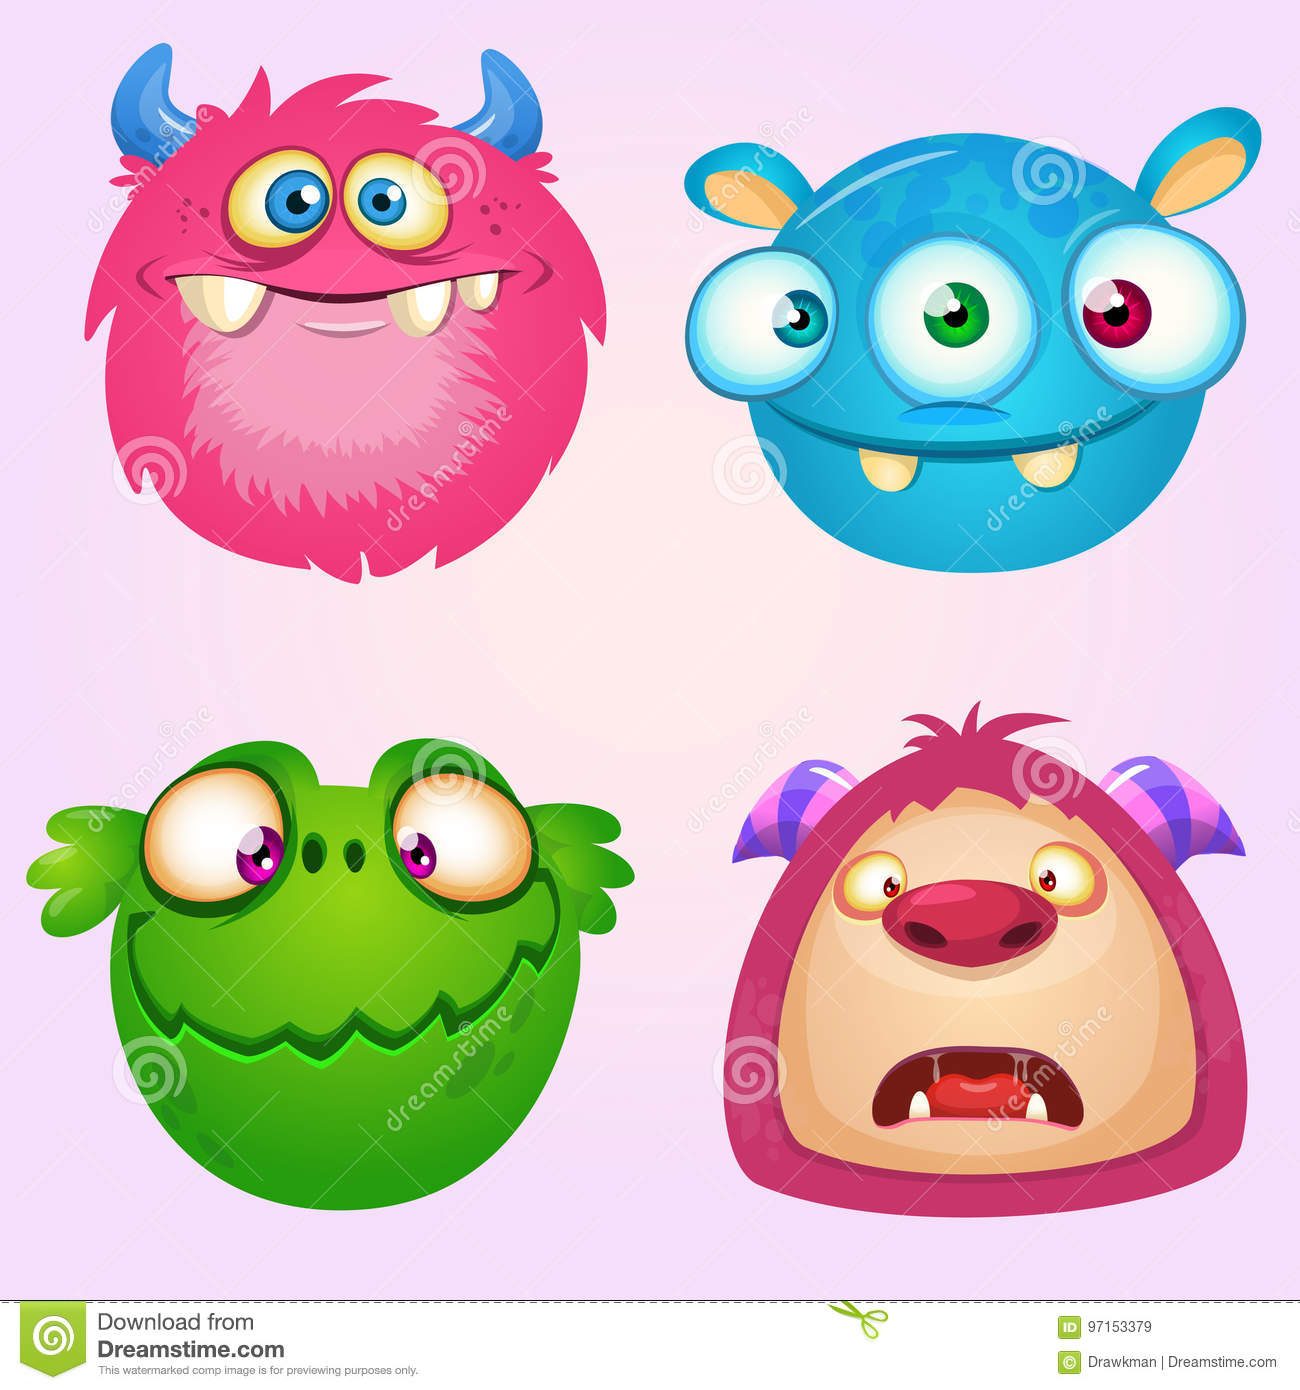 Cute cartoon monsters collection. Vector set of 4 Halloween monster icons.